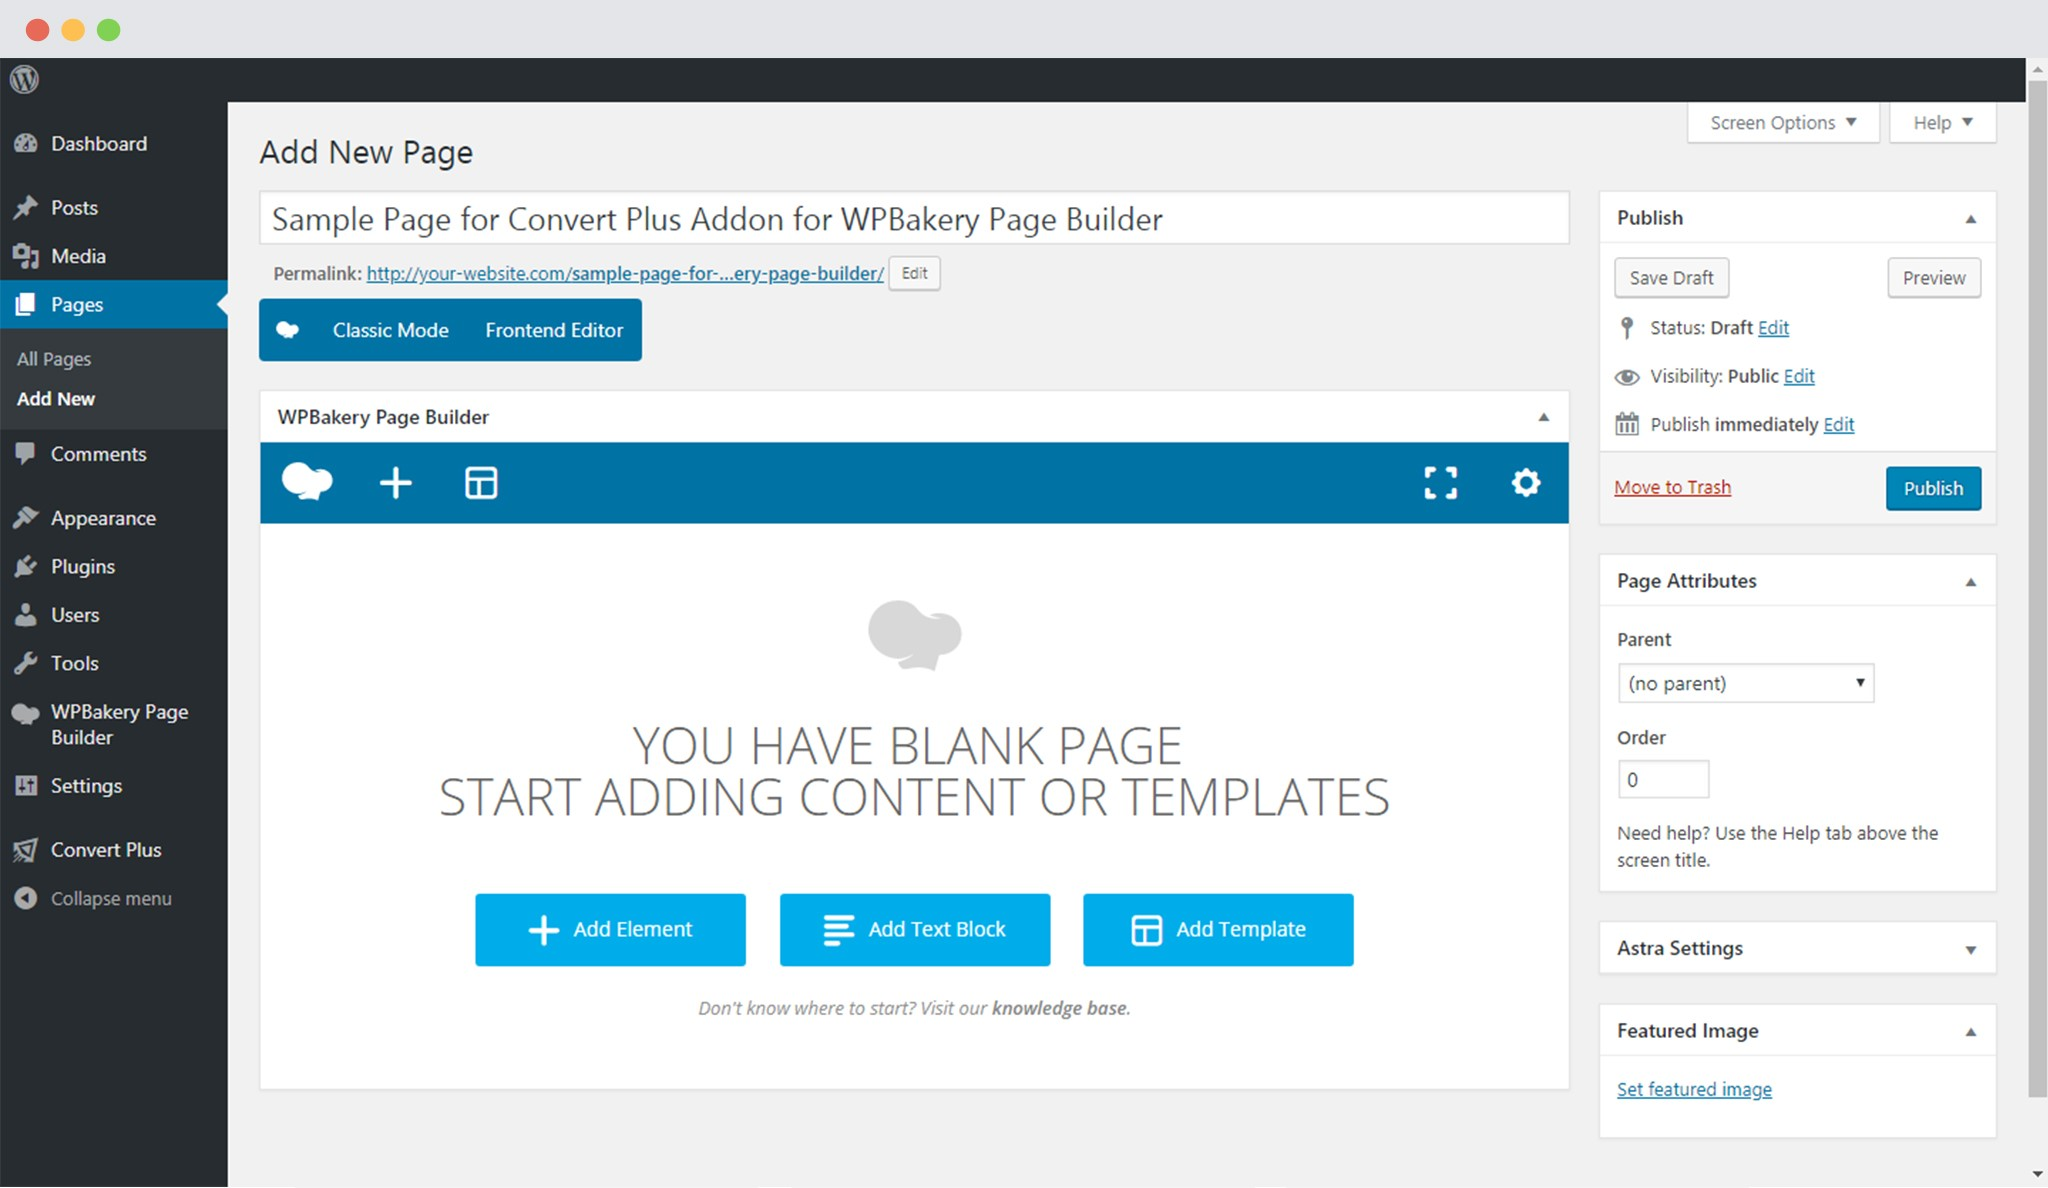 [Image: Create-new-page-in-WPBakery-Page-Builder.jpg]